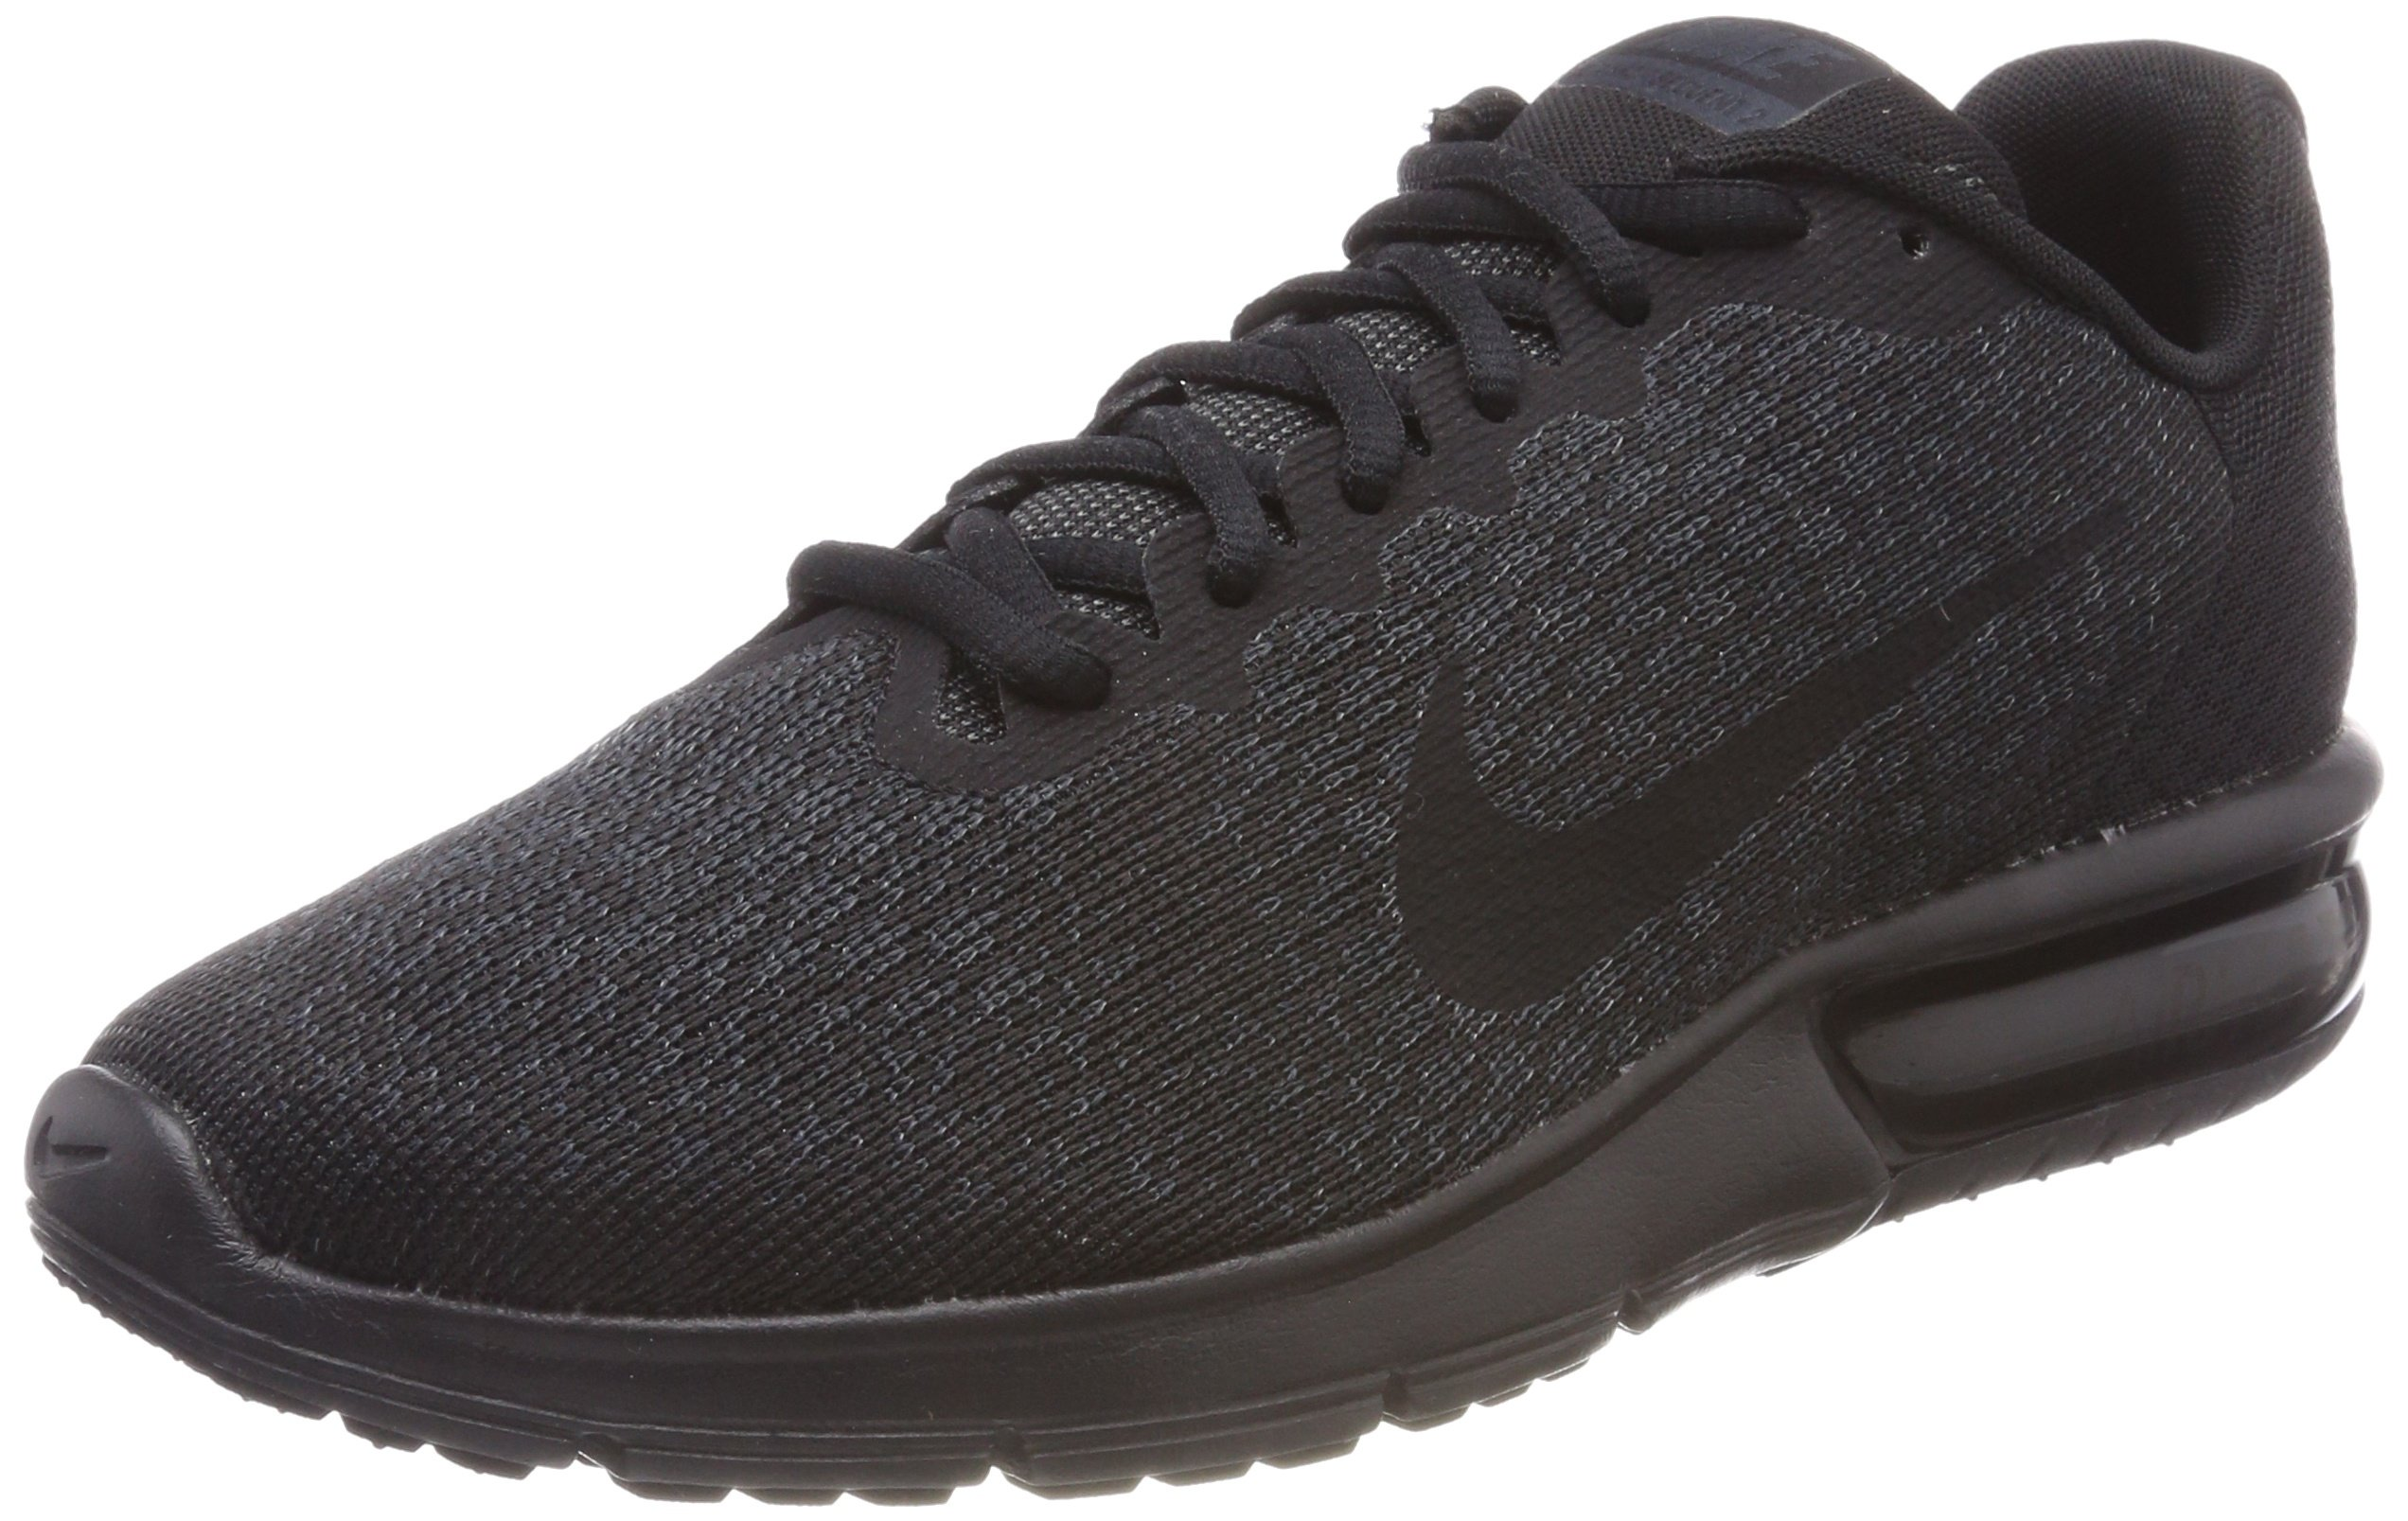 49a0745565 Galleon - NIKE Men's Air Max Sequent 2 Running Shoe (13 D(M) US, Black/Black )